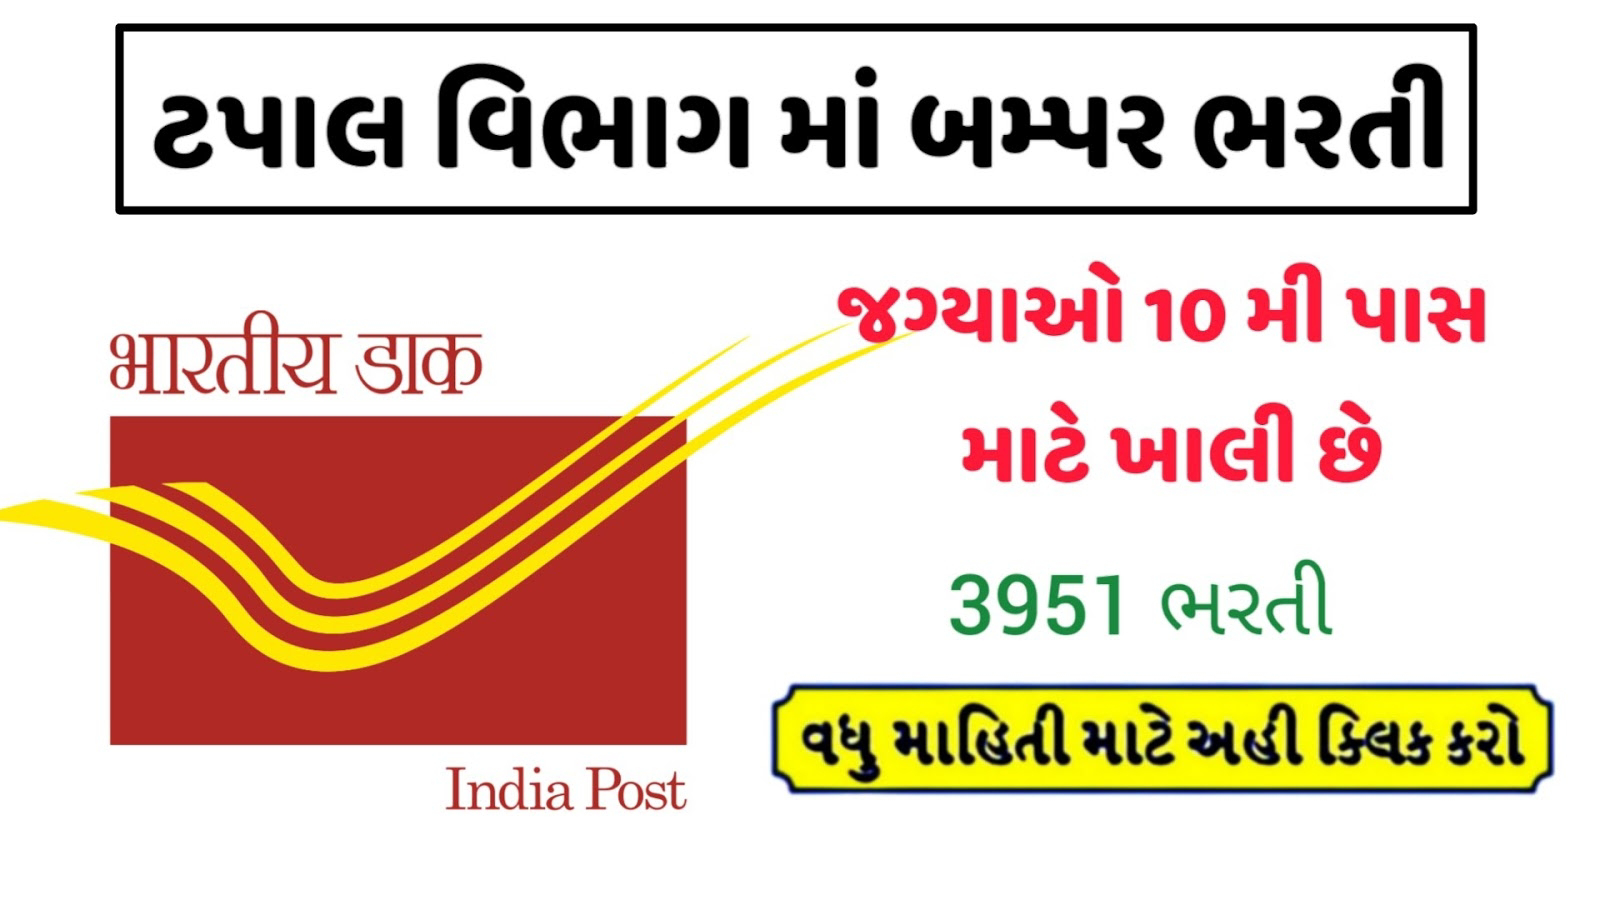 India Post GDS Recruitment 2020 Online Application Extended for 3951 Vacancies in UP Postal Circle